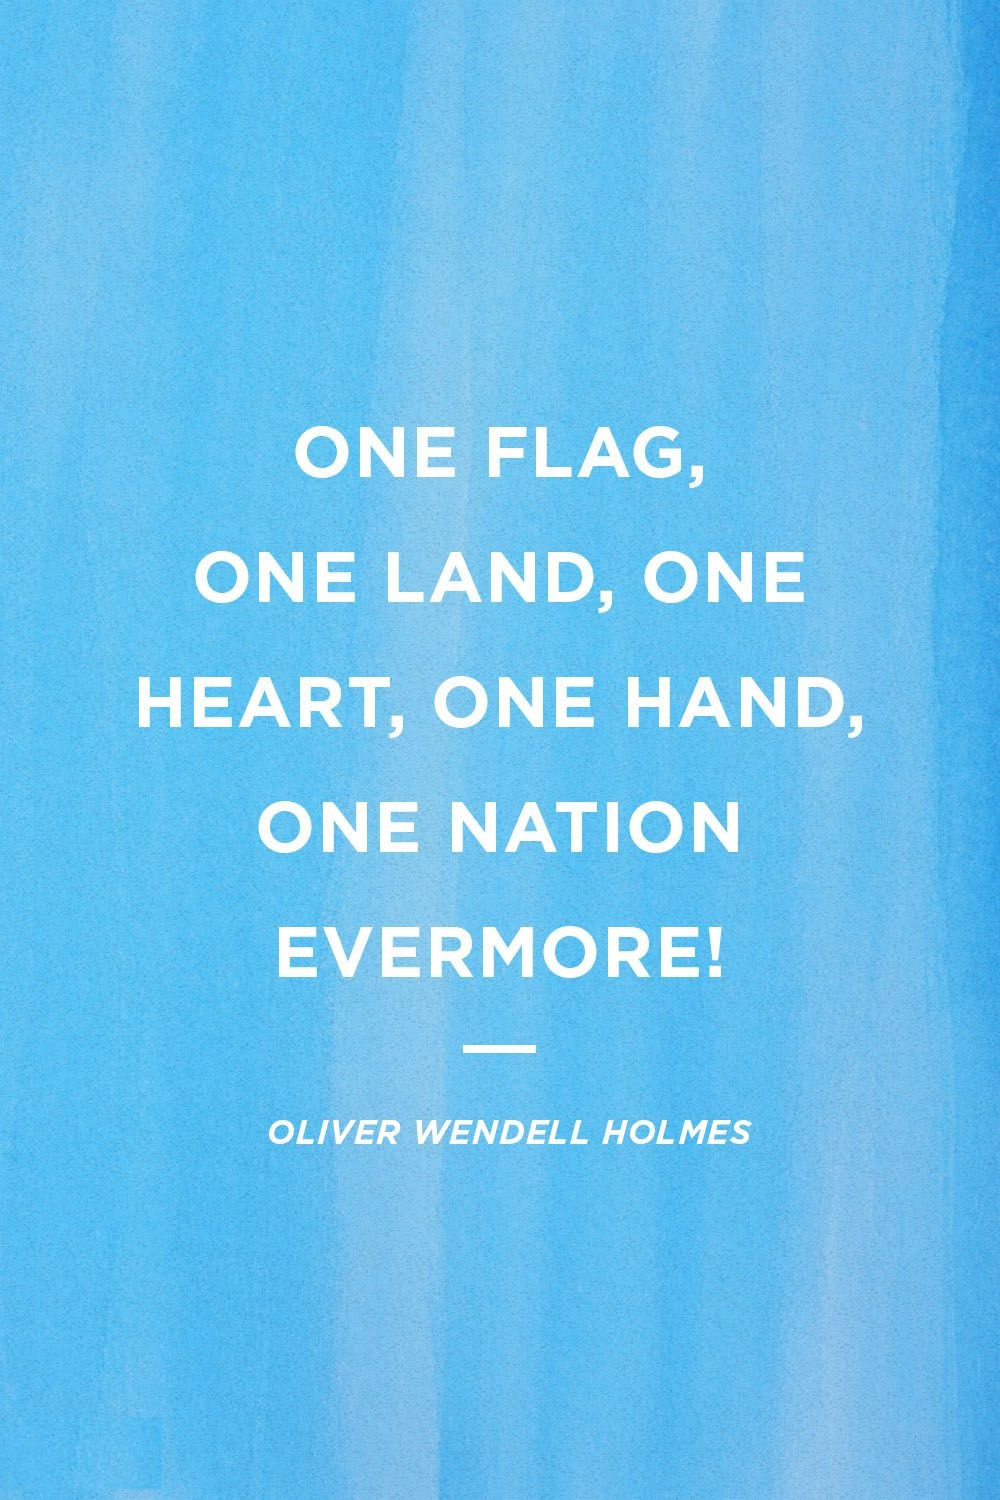 Happy 4th of July Quotes Fourth of July 2019 Independence